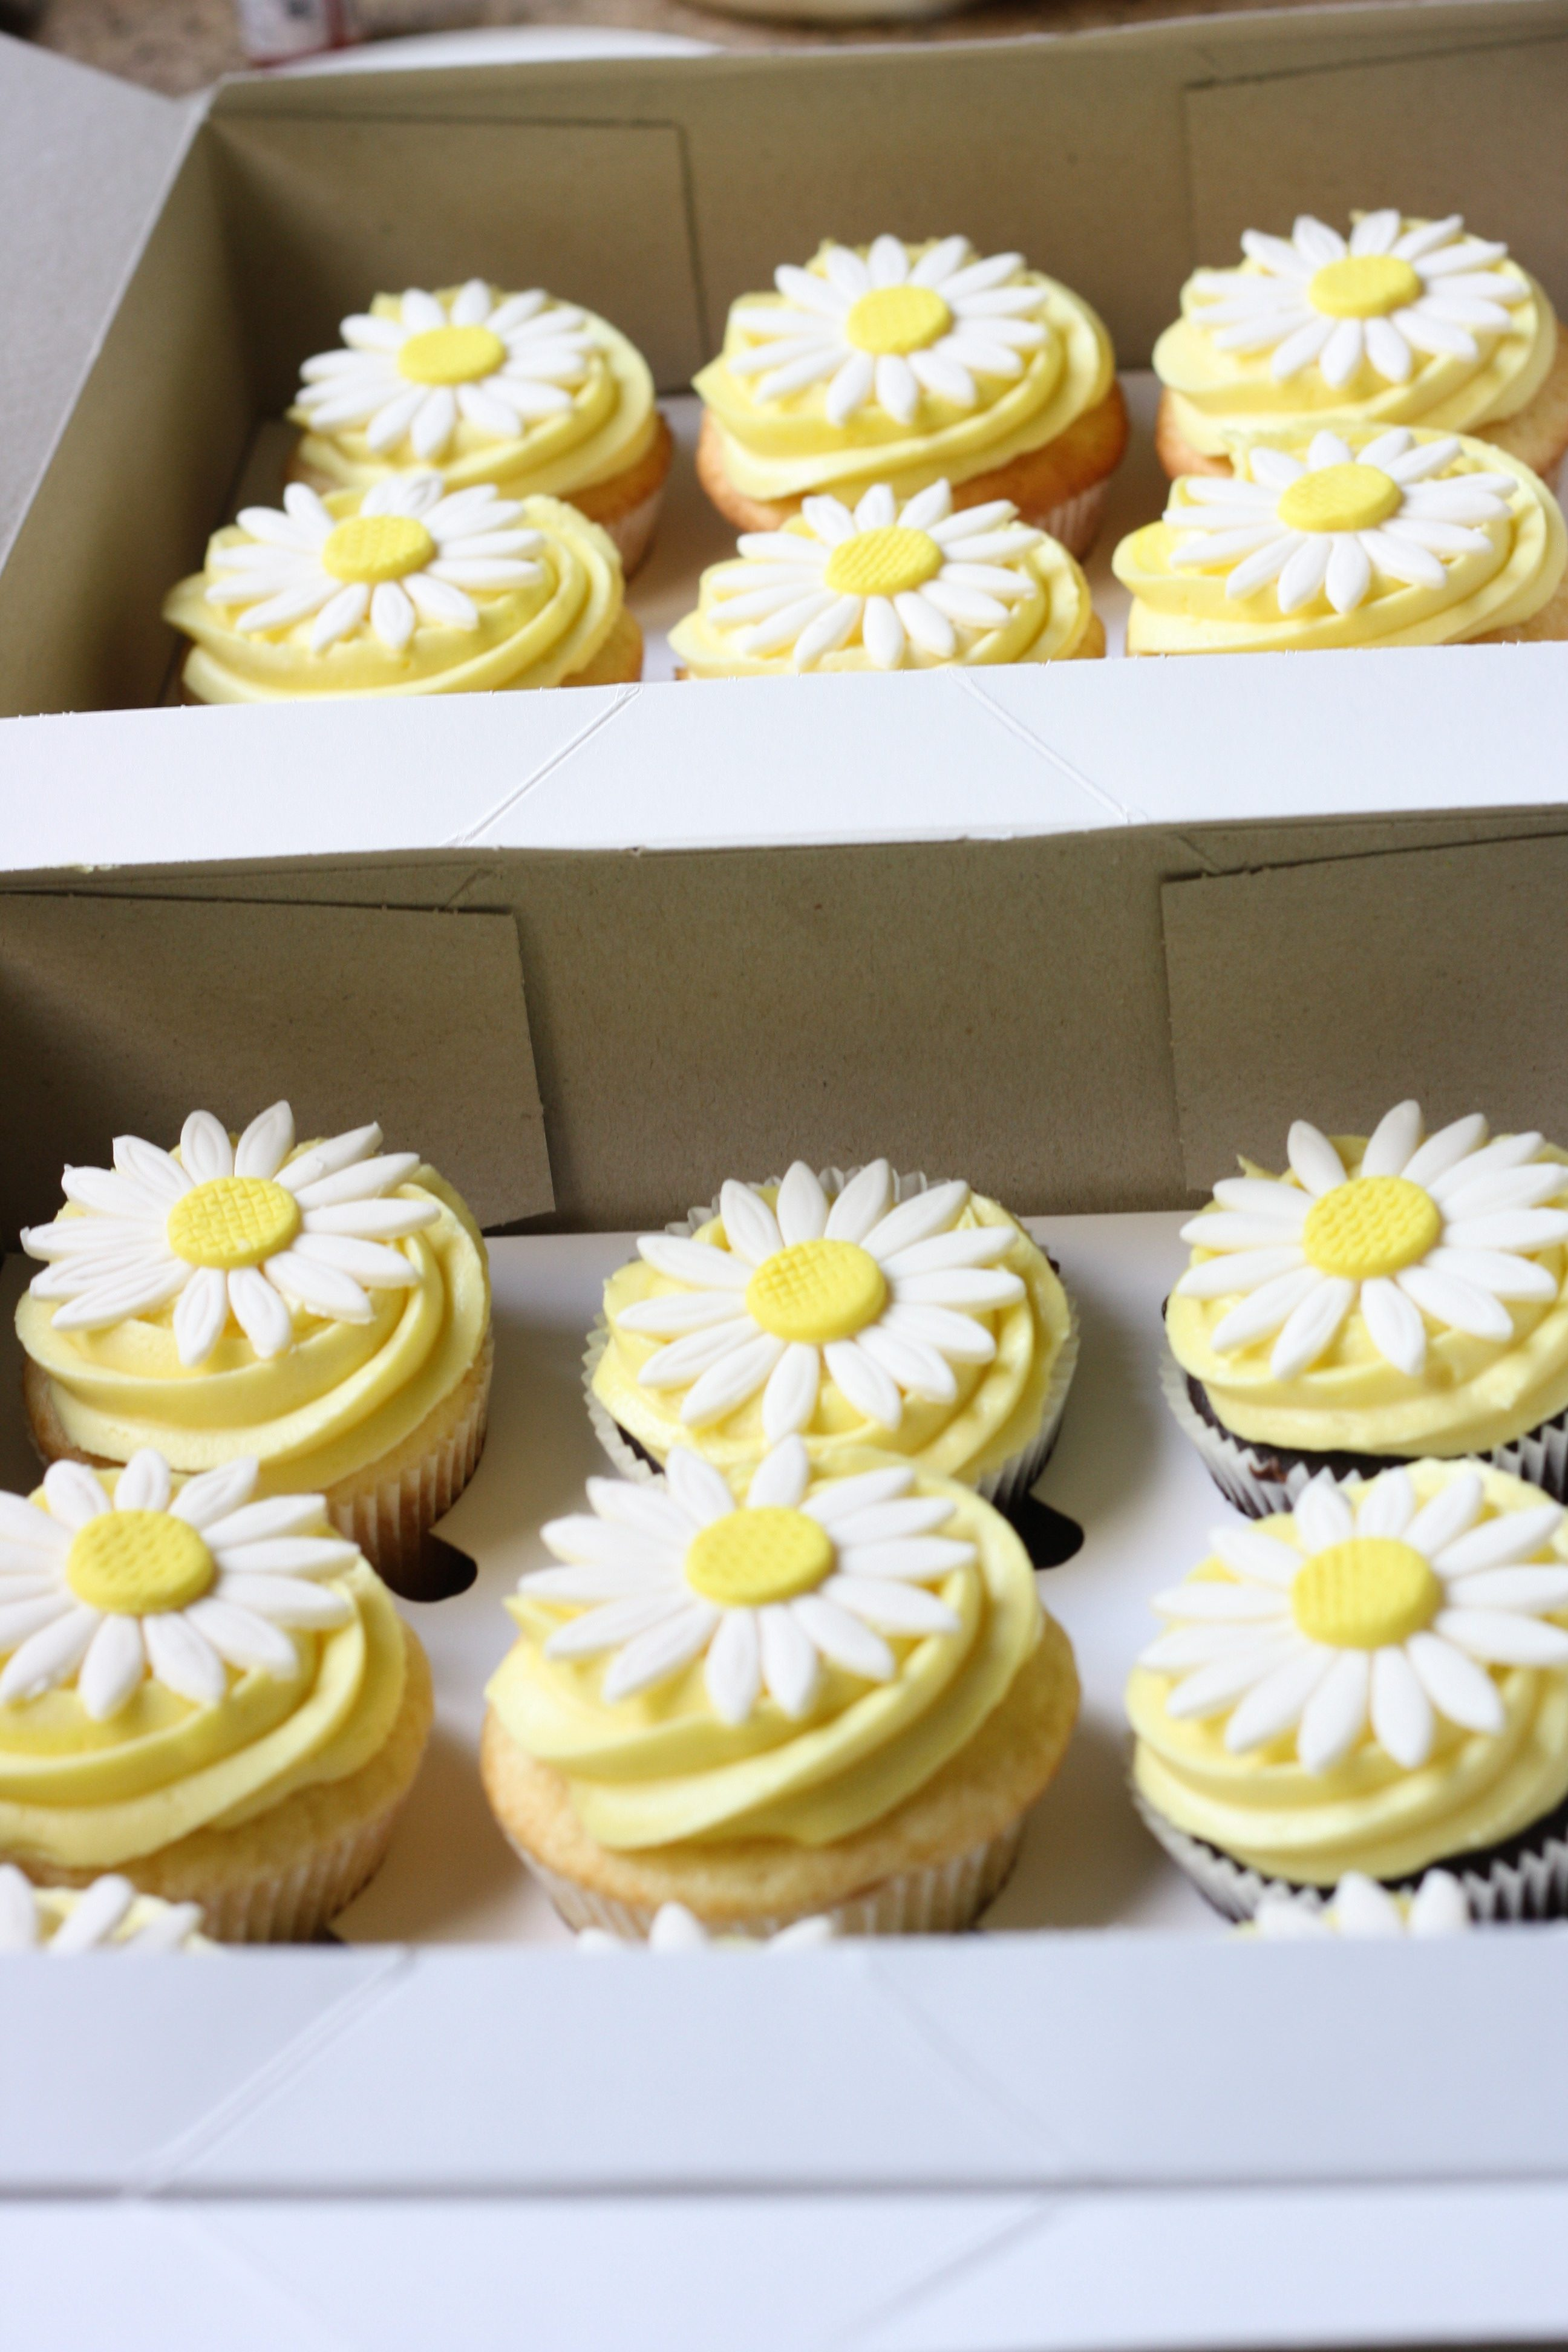 homemade cupcakes with yellow icing and flower topper